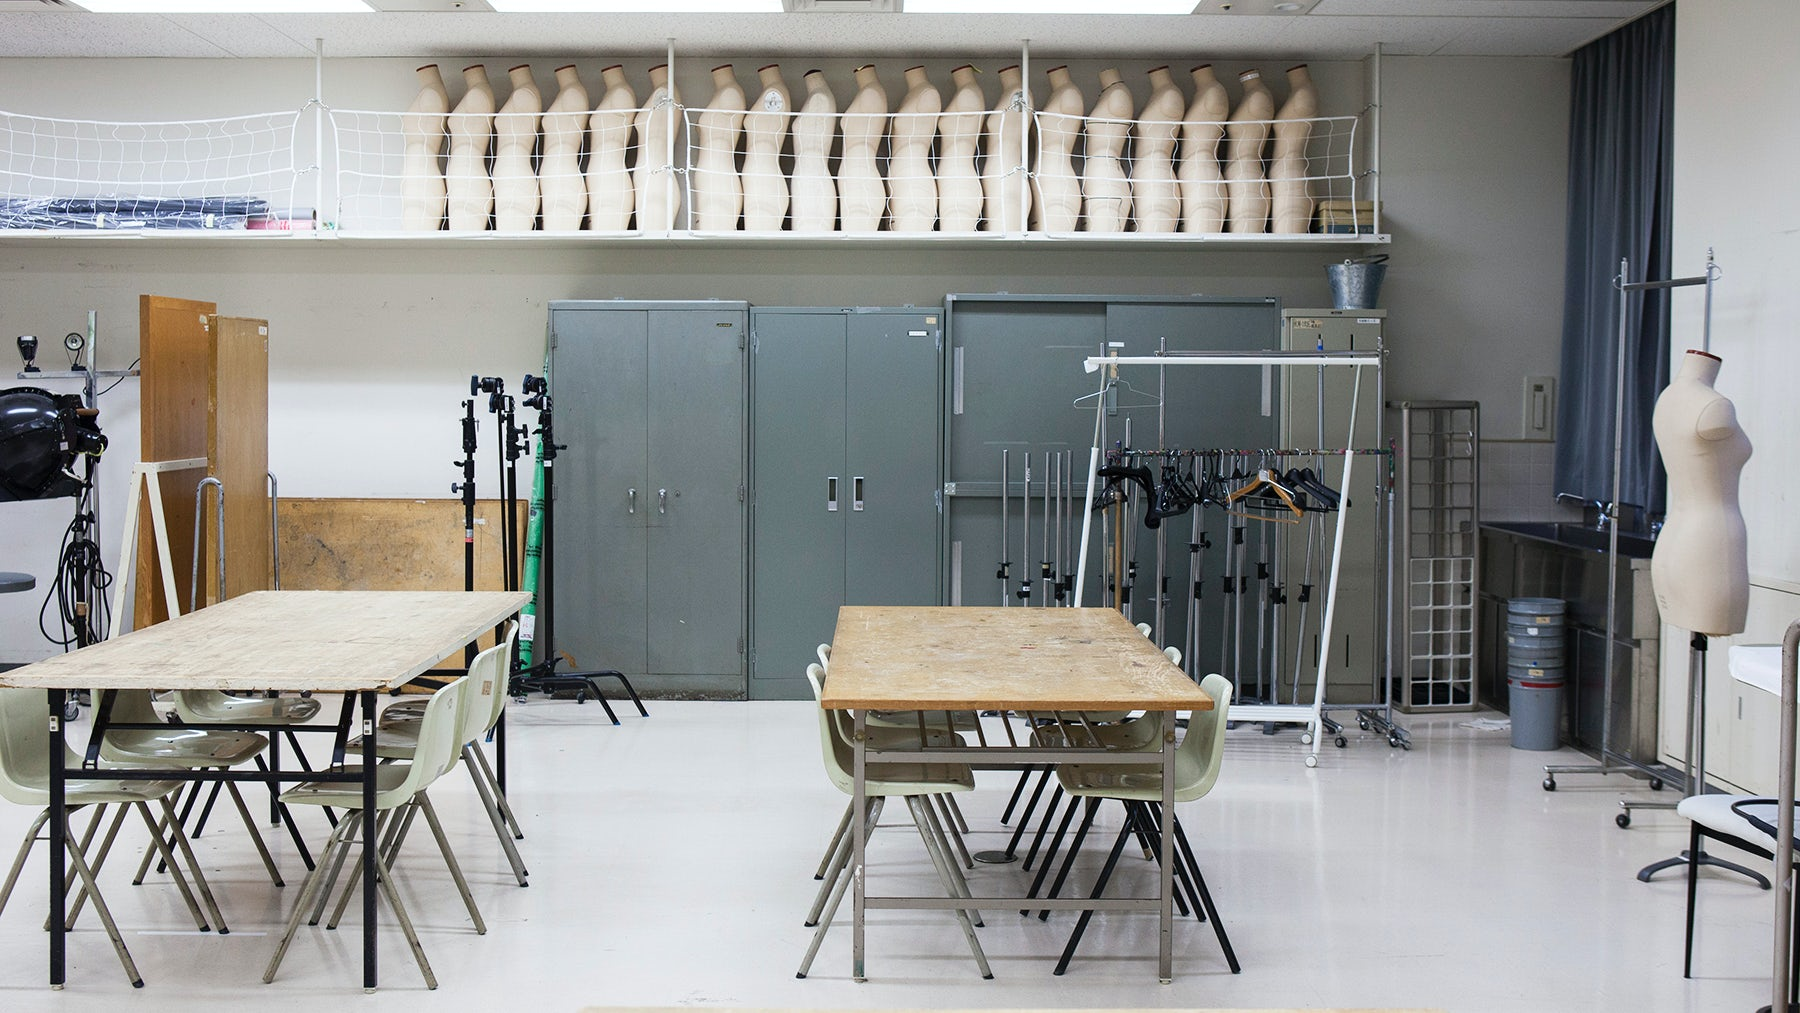 A Rare Look Inside Tokyo S Bunka Fashion College Education The State Of Education Bof